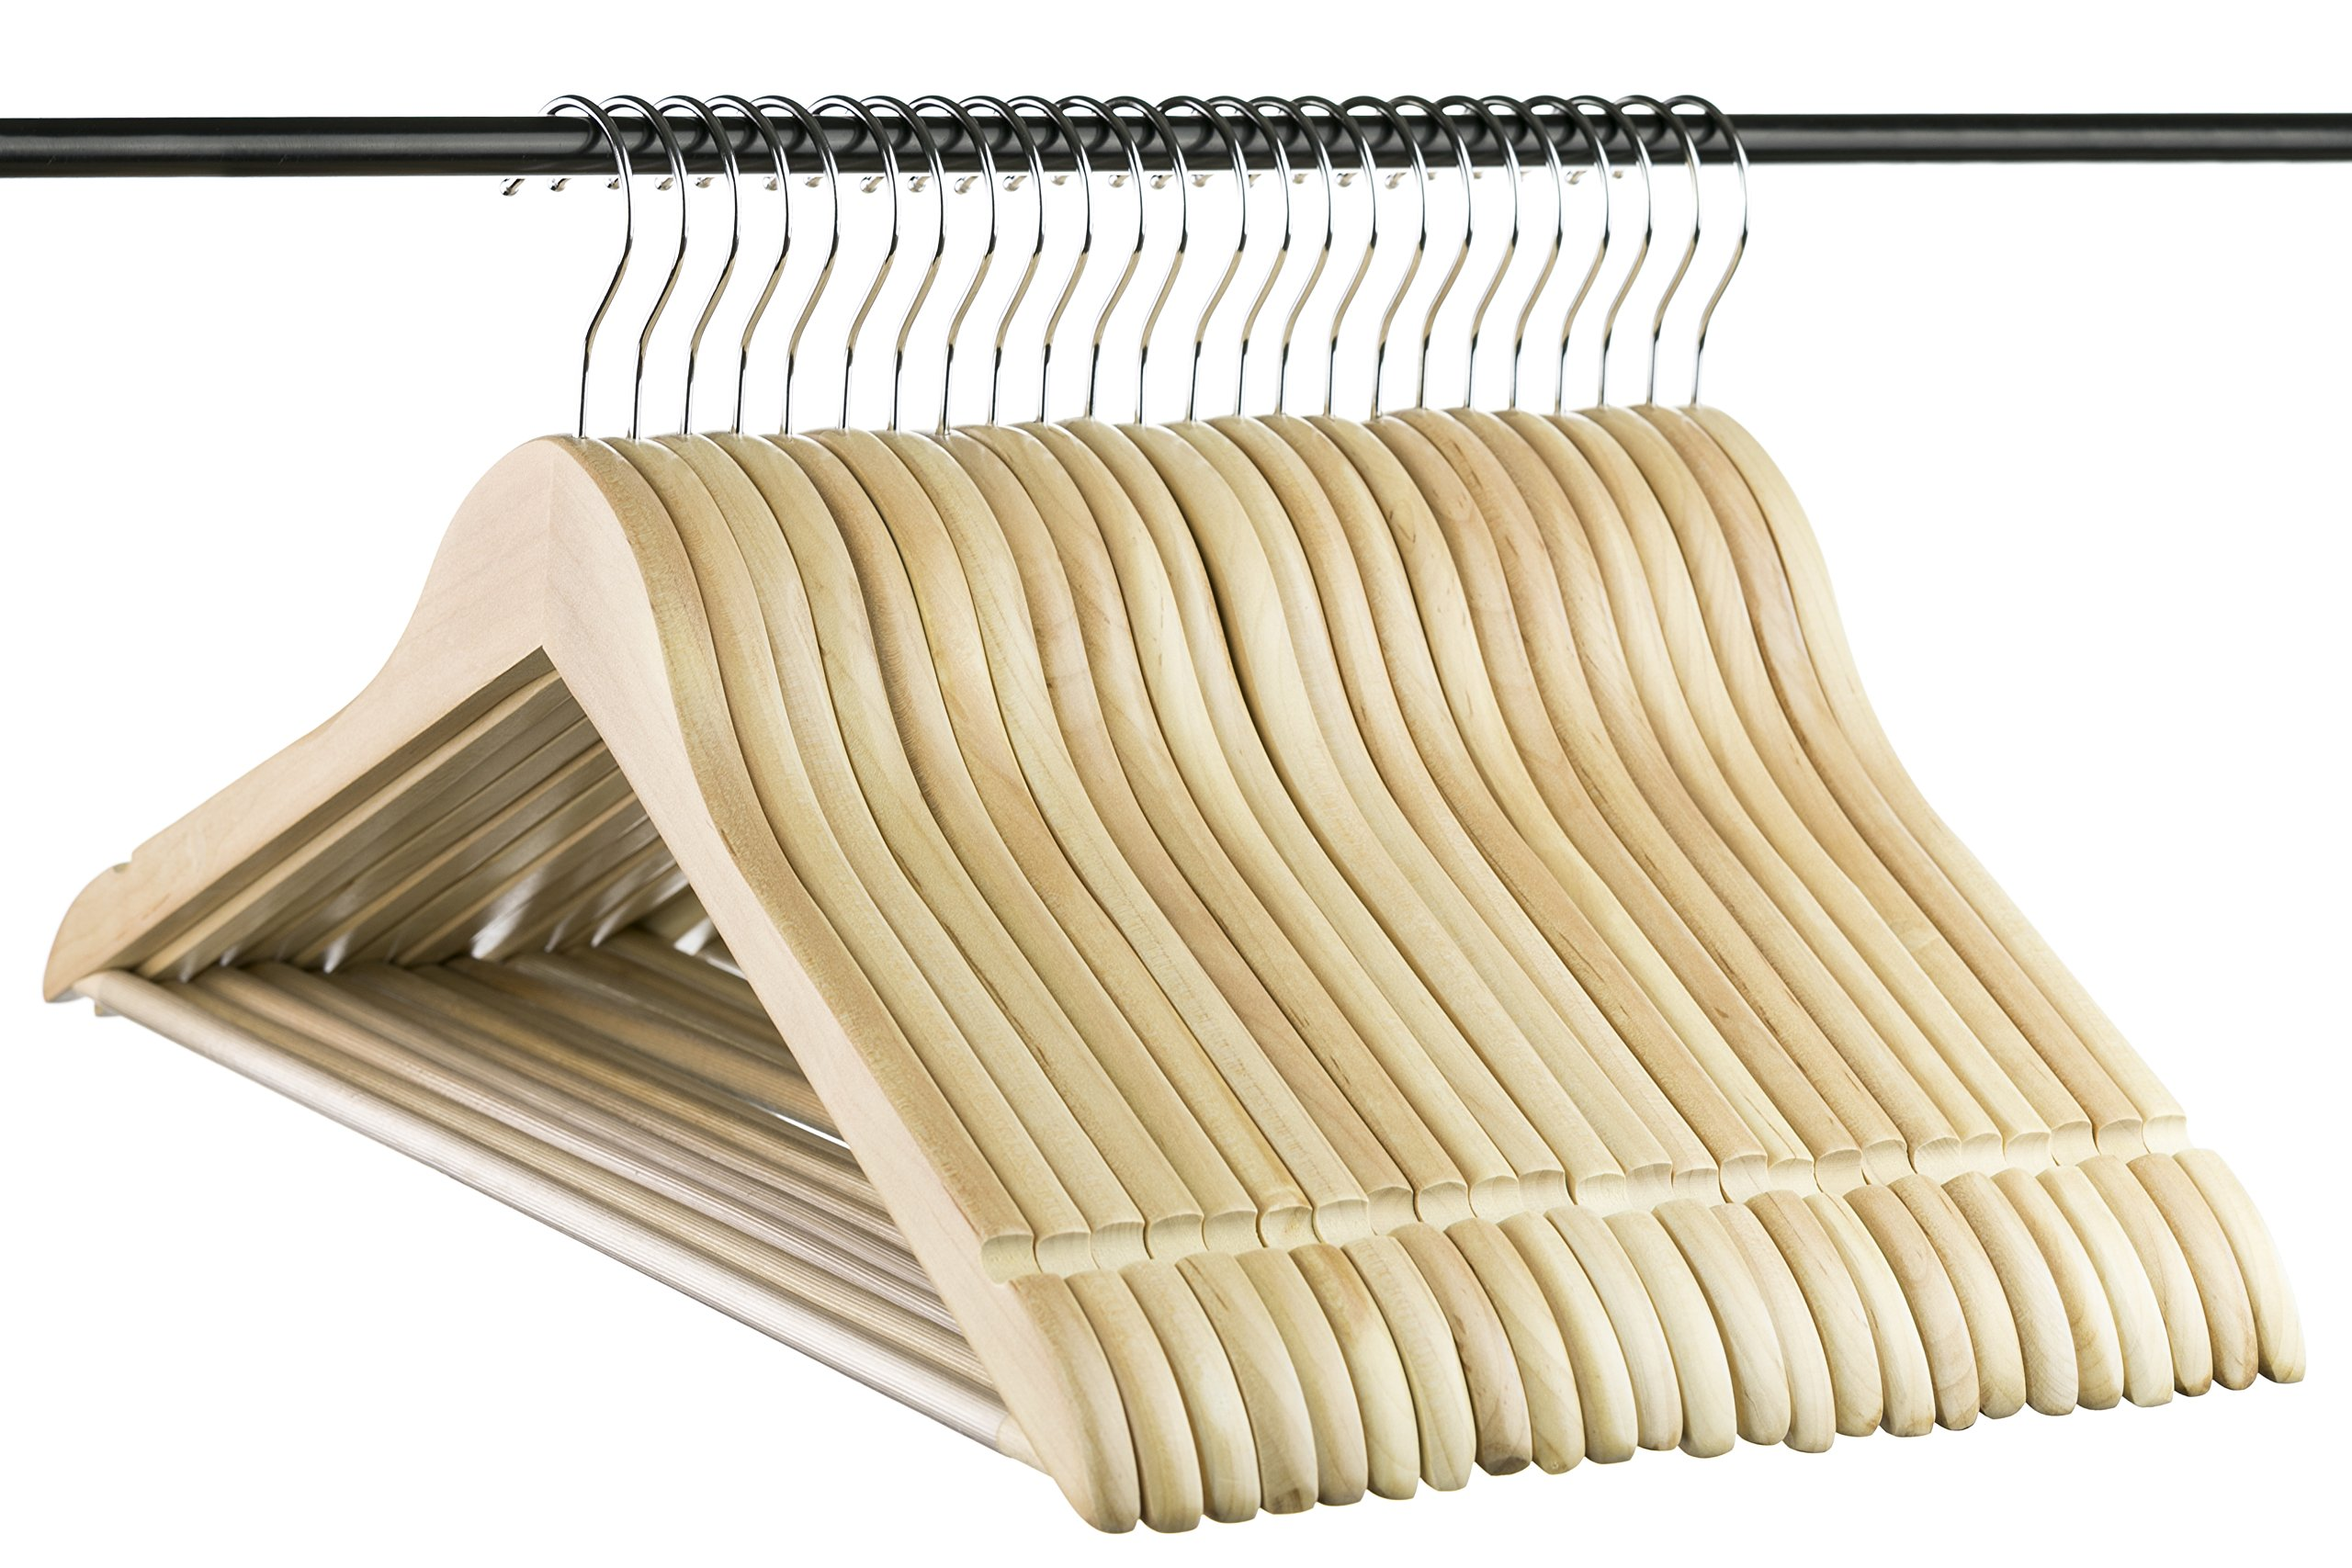 Polished Natural Everyday Wood Hangers with Non-Slip Bar and Notches, Super Sturdy and Durable Wood, 24 pack by Neaties